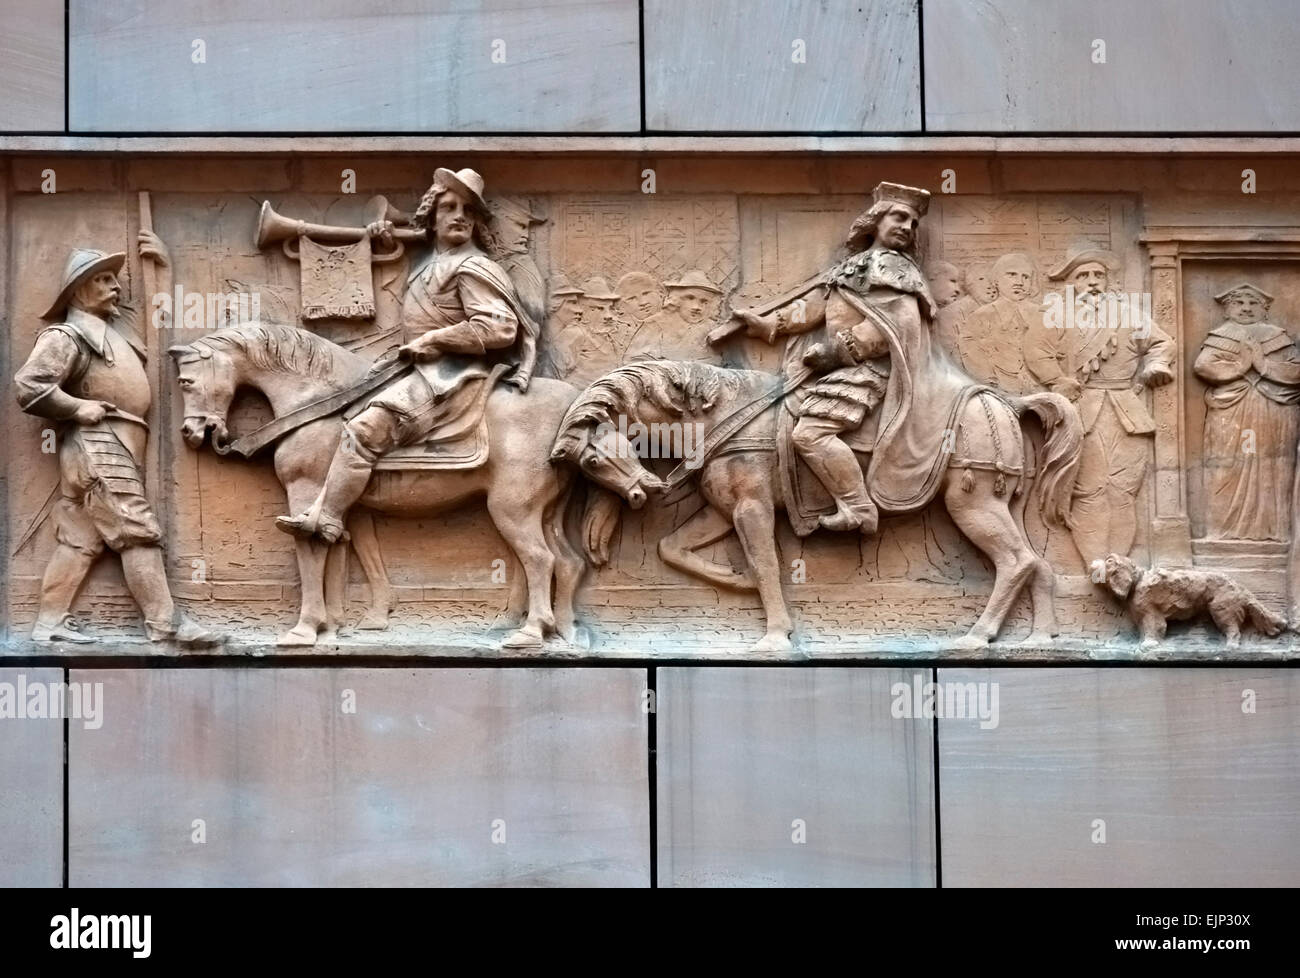 relief-sculpture-1-poultry-london-england-united-kingdom-europe-EJP30X.jpg